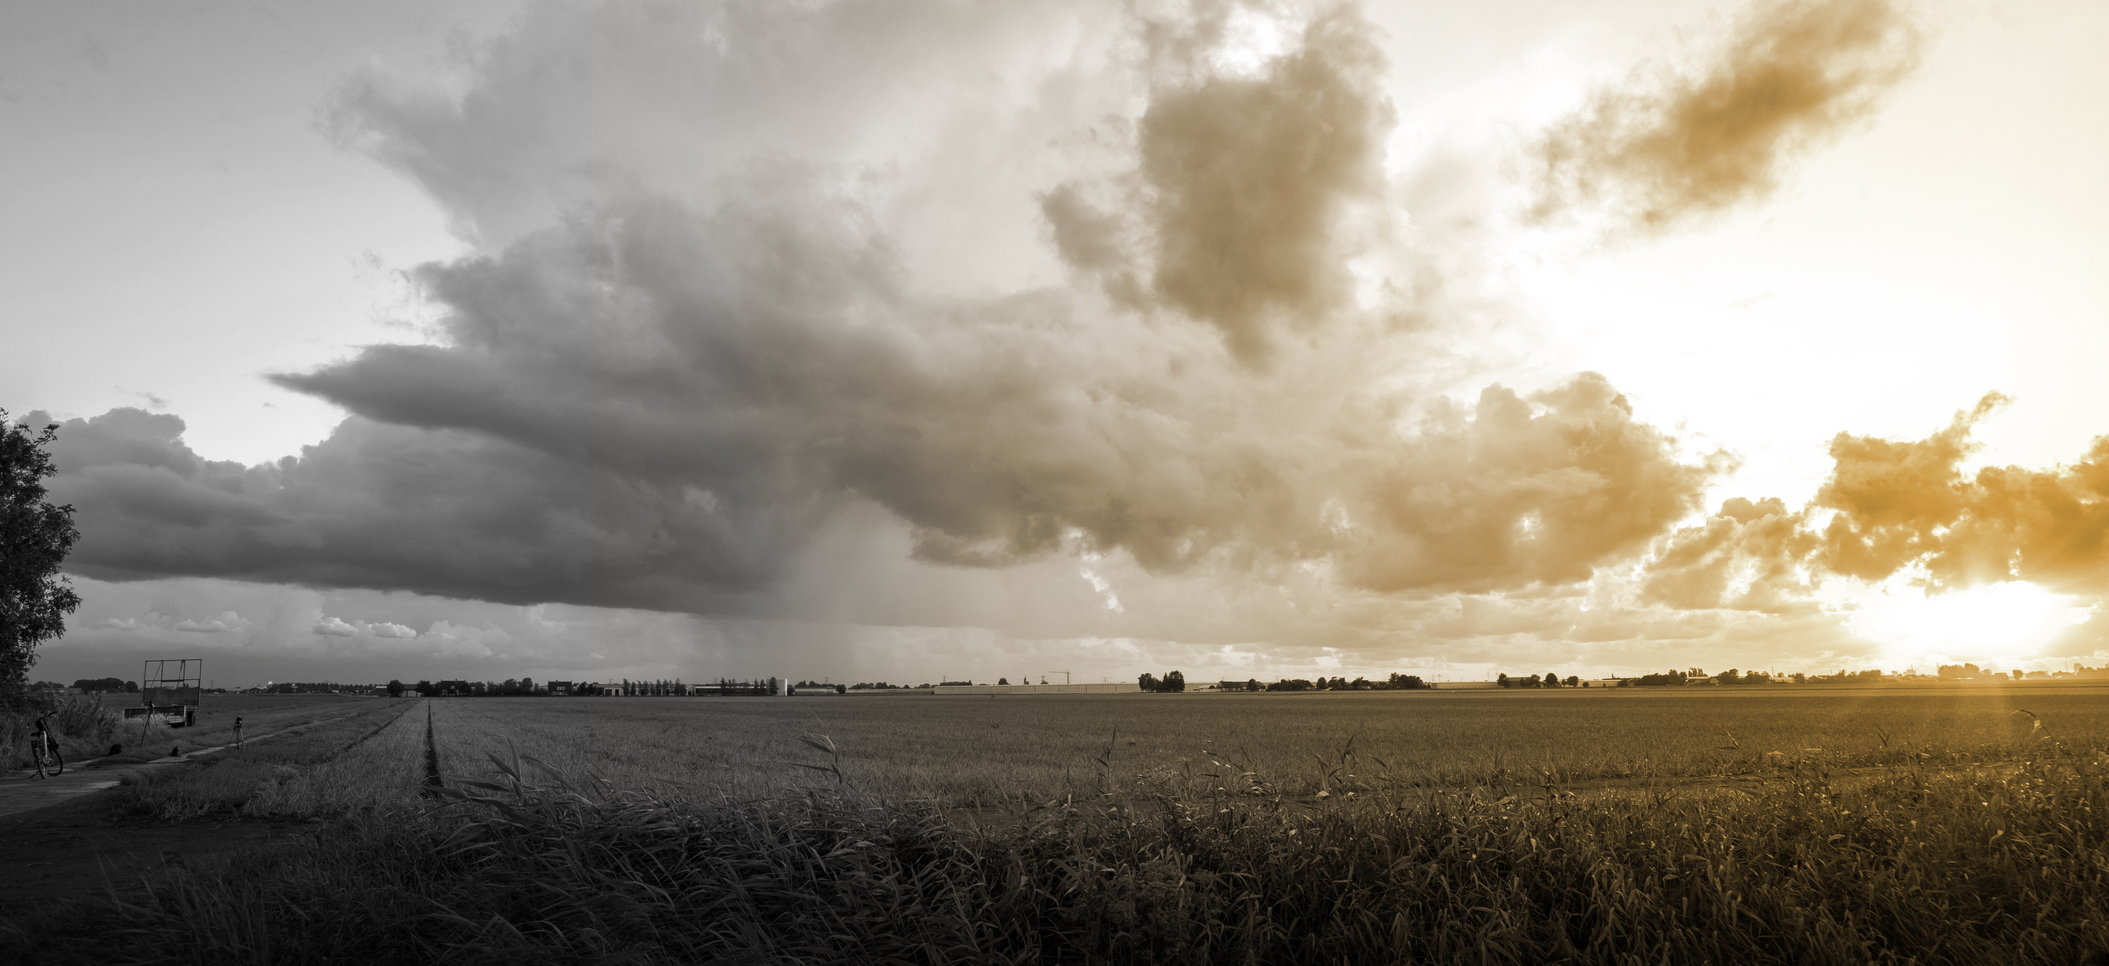 Scenic view of a thunderstorm over wide open flat landscape at sunset